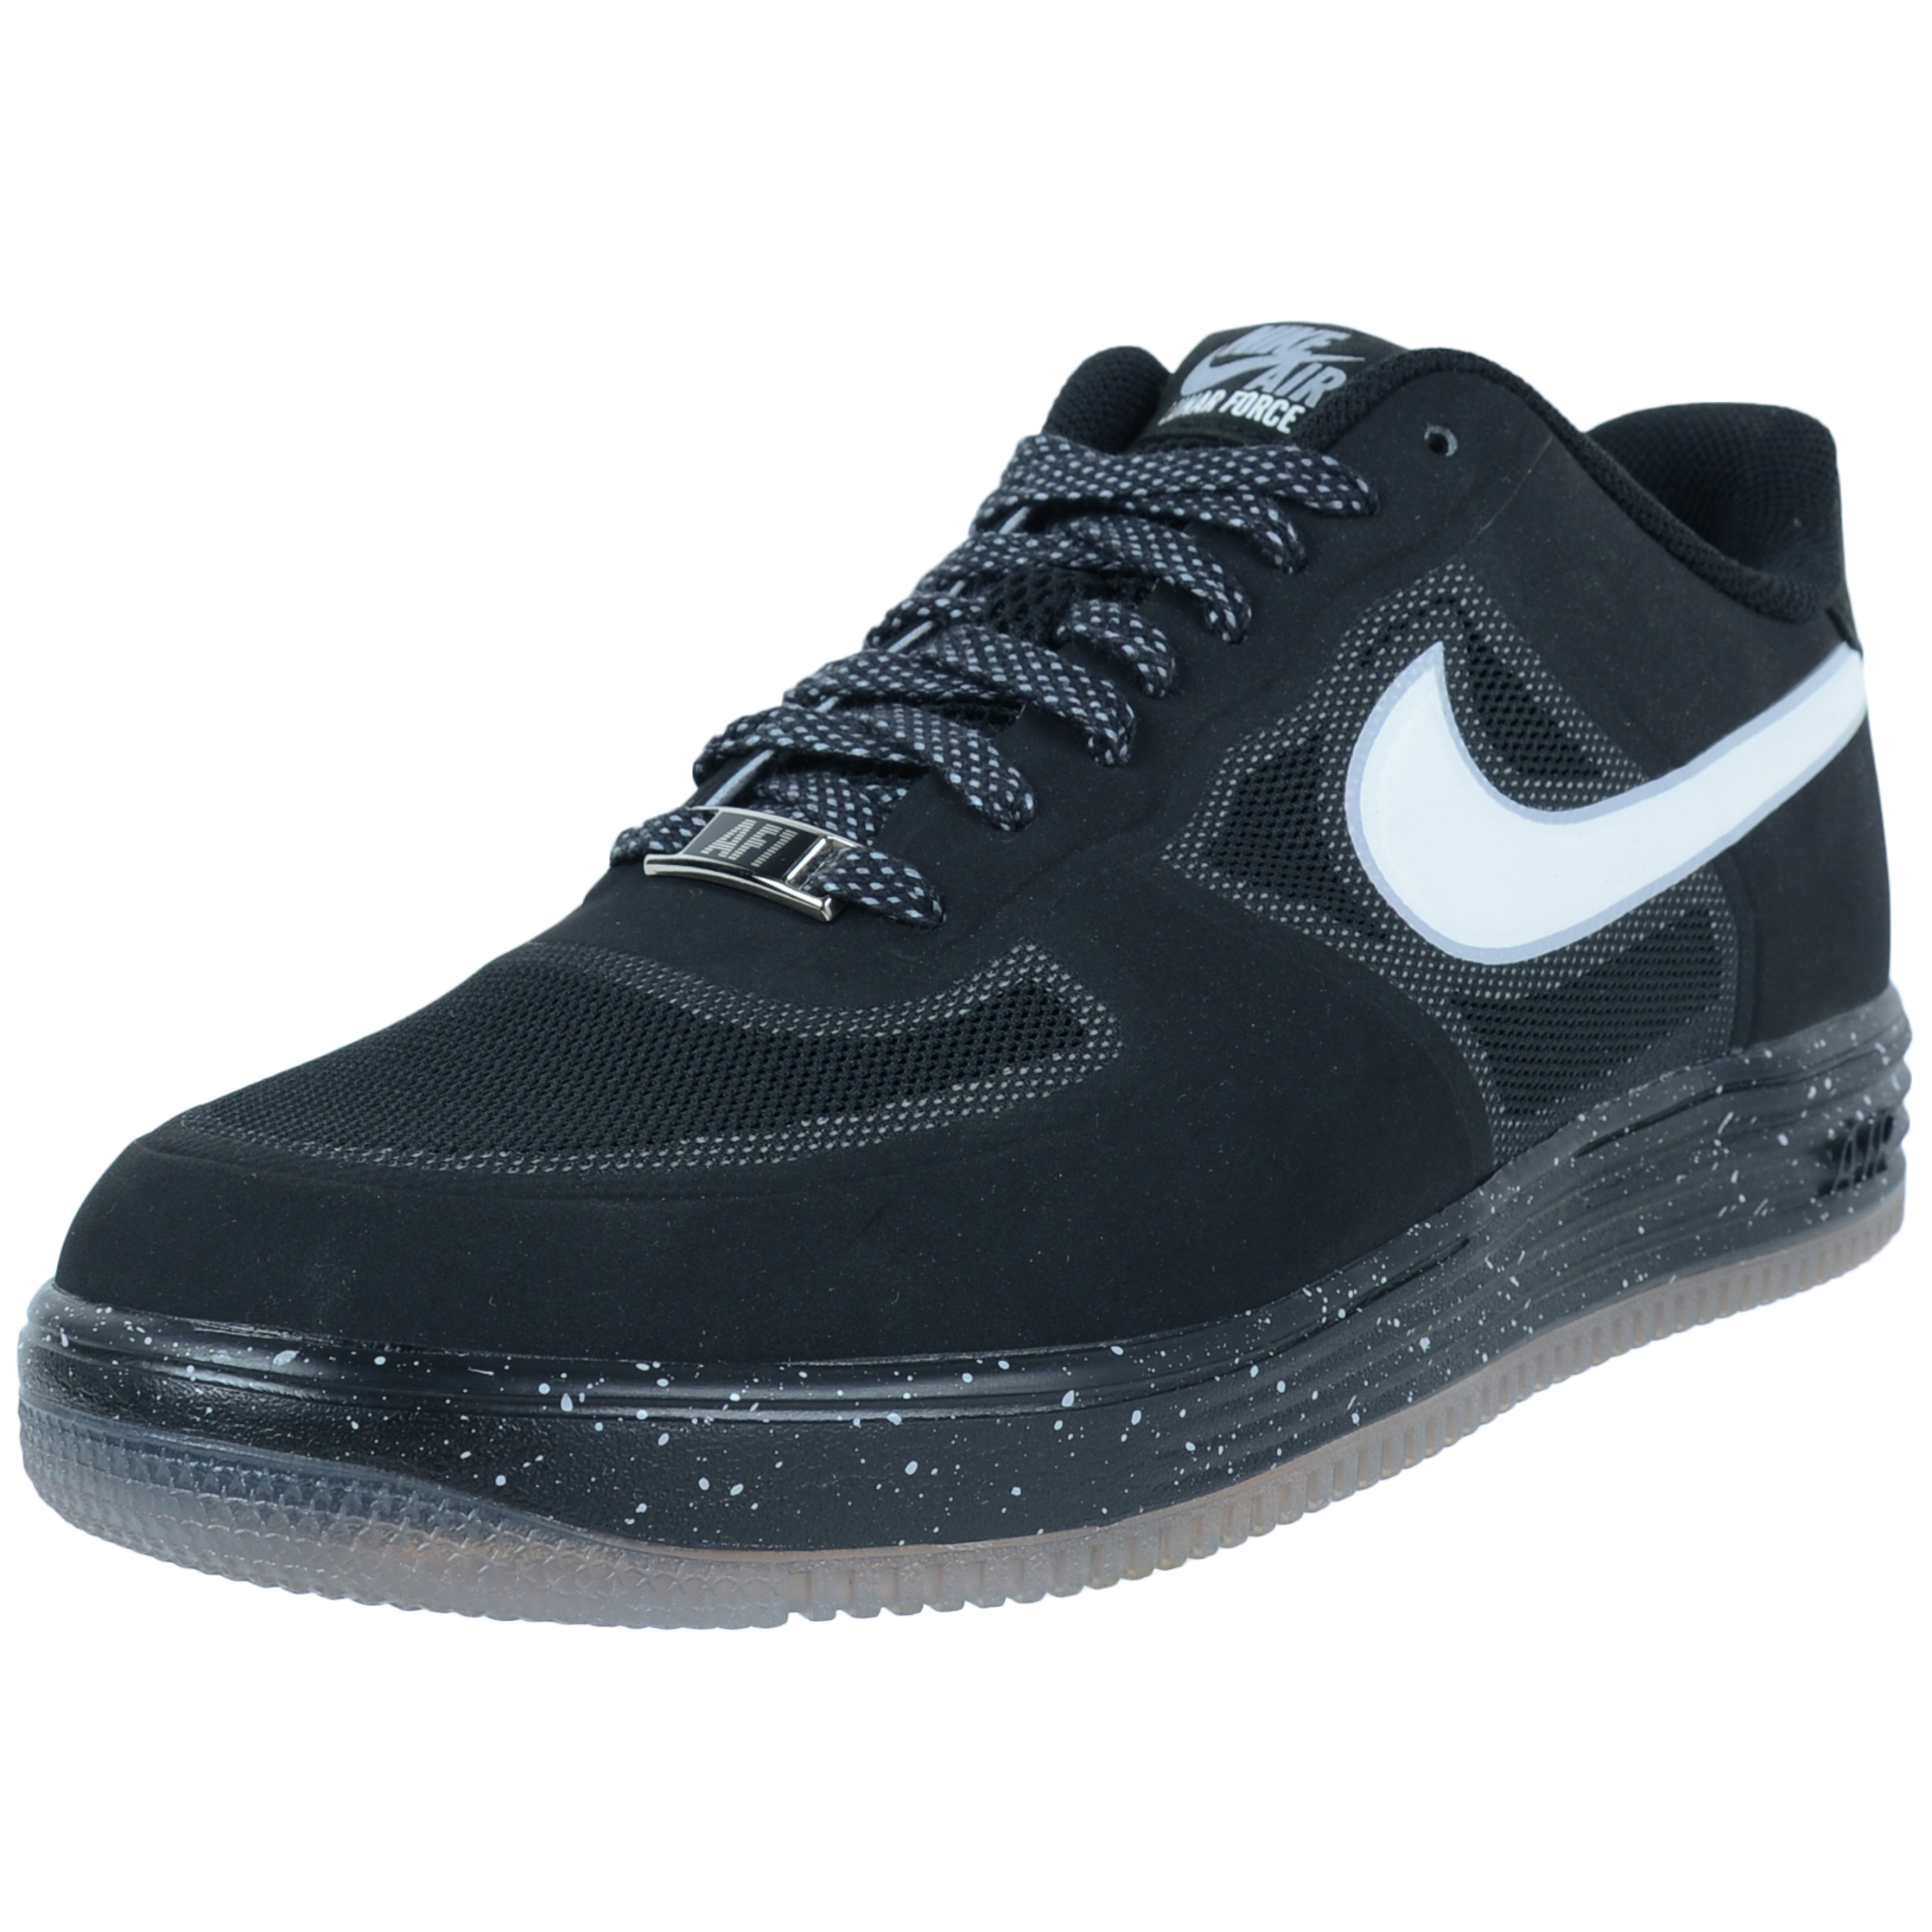 best service 1f276 18d07 11943 332ea  sweden nike nike lunar force 1 fuse oreo basketball shoes  black white 555027 010 walmart b7cf0